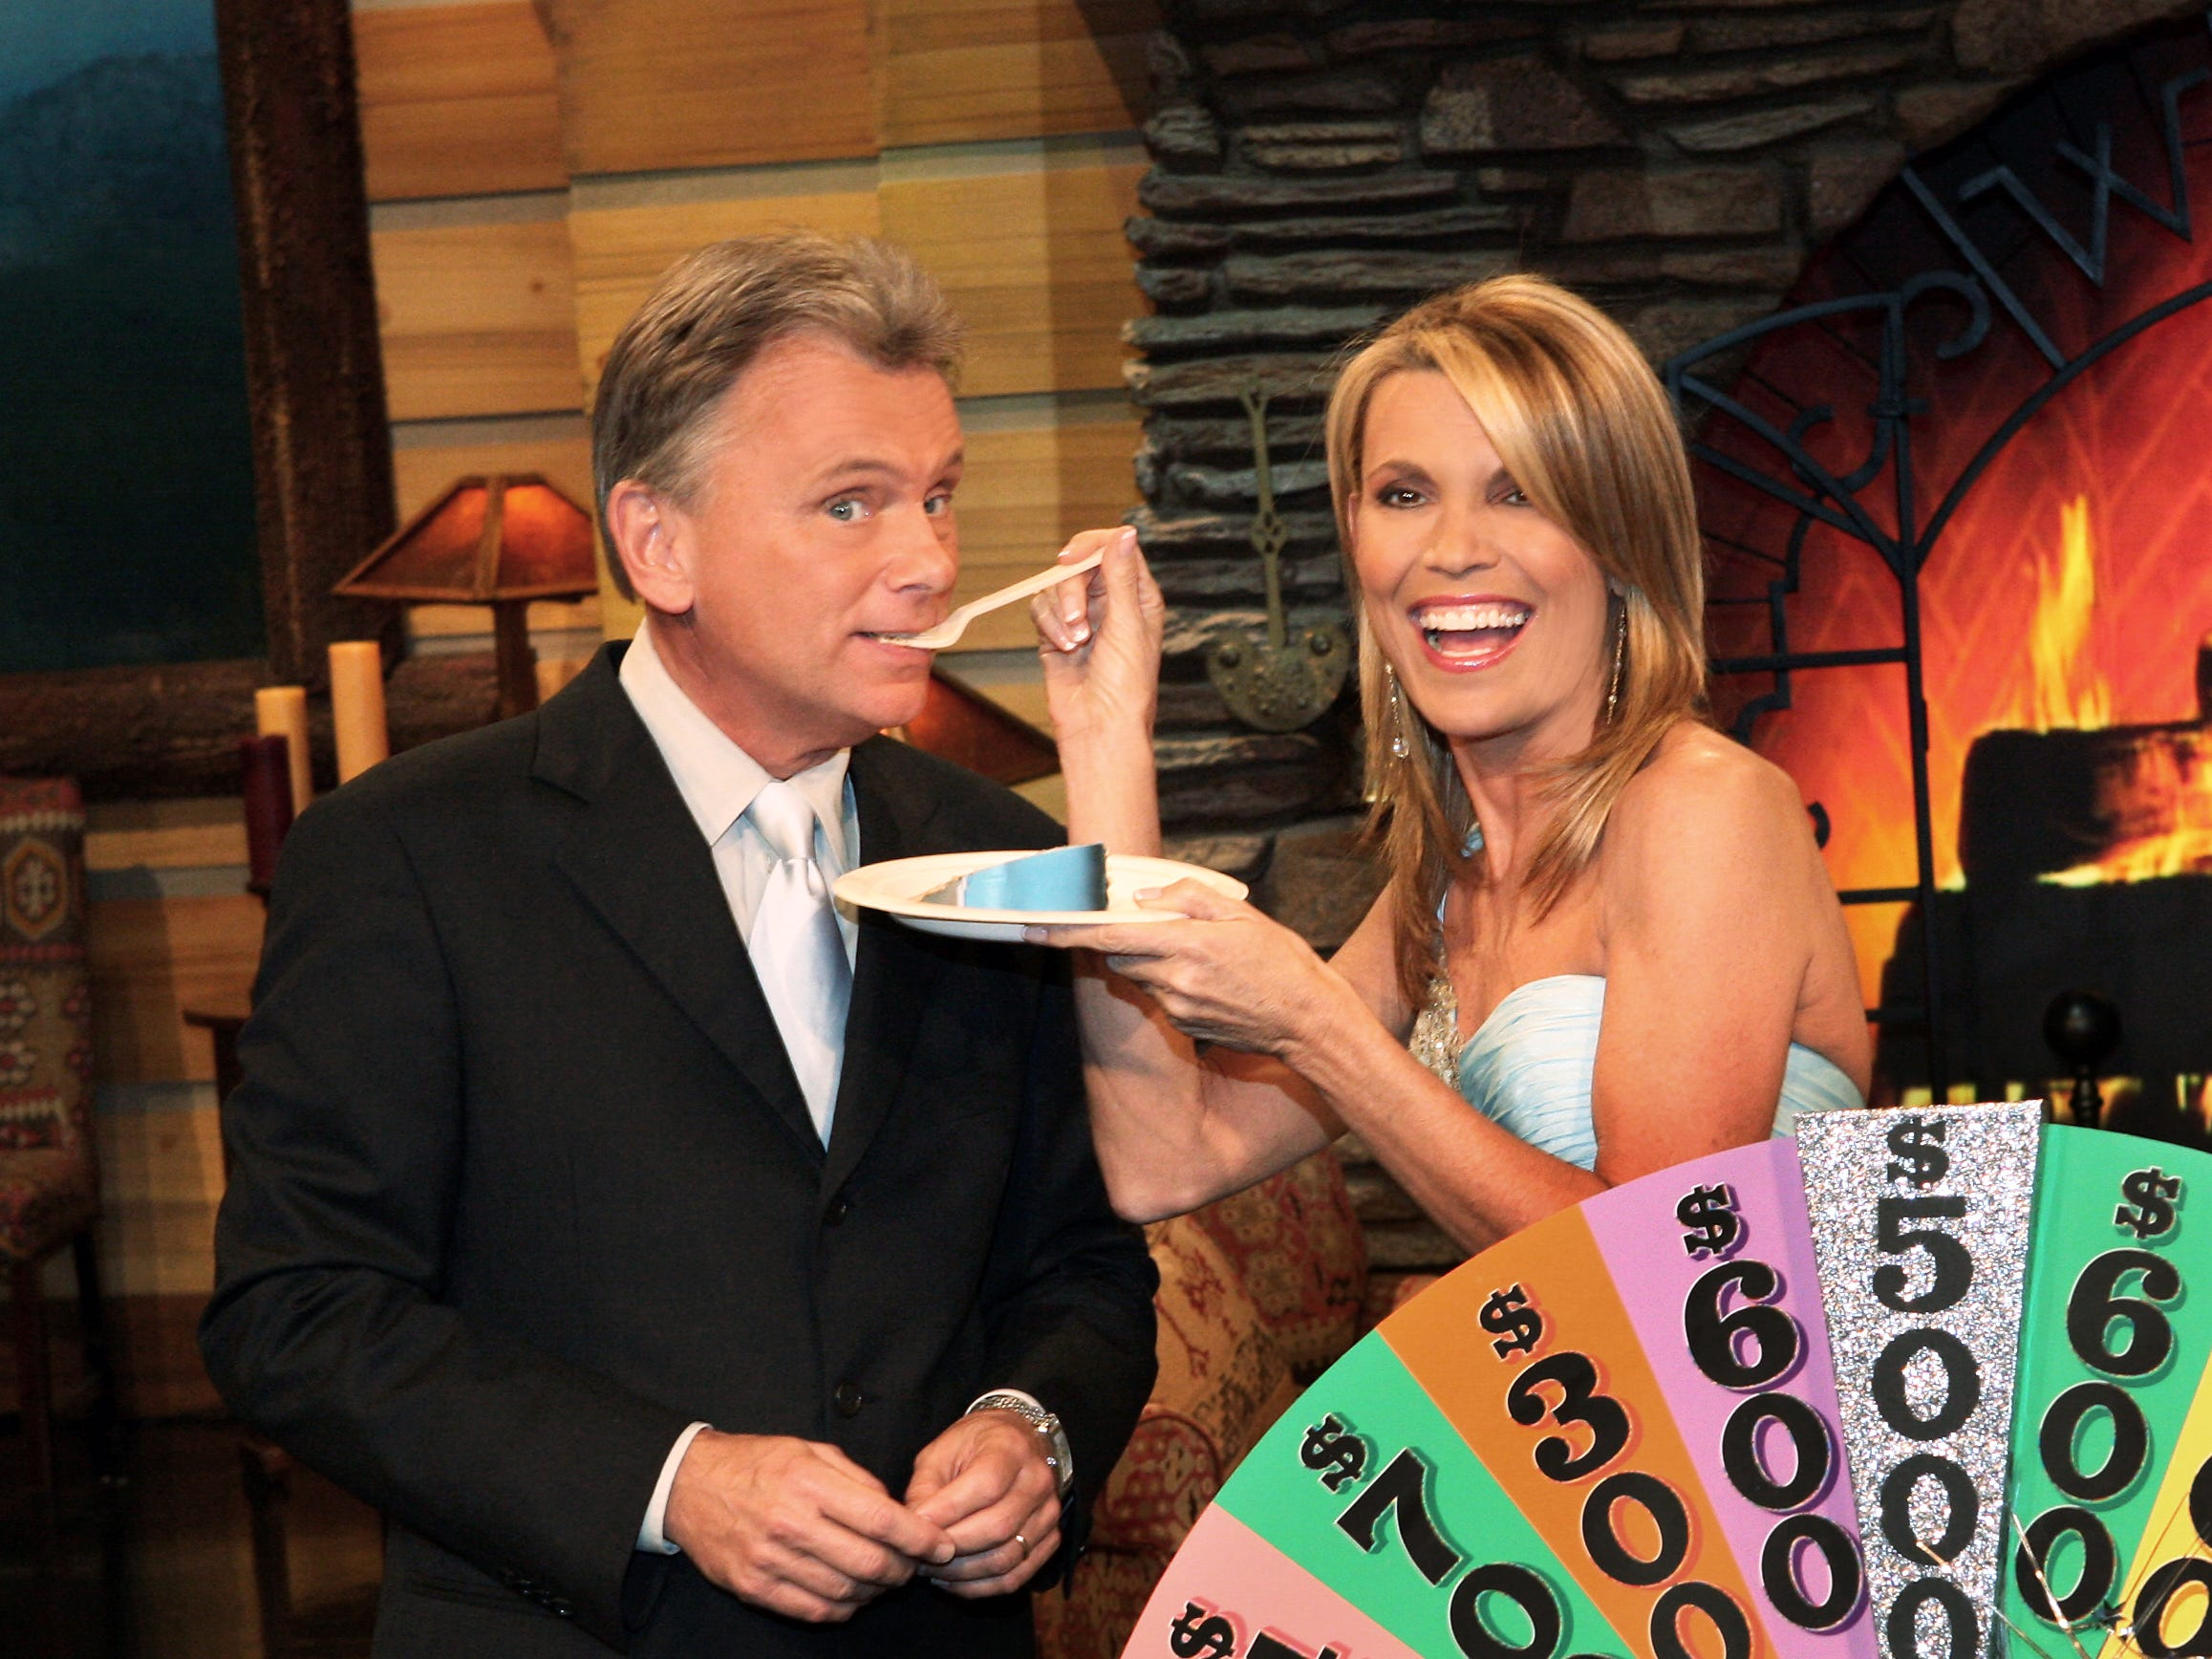 WHEEL OF FORTUNE SPINS 5,000TH SHOW - Wheel of Fortune hosts Pat Sajak and Vanna White are still the icing on cake.  Now in its 26th season, America's #1 syndicated television show will air its 5,000th episode on February 27, 2009. --- DATE TAKEN: rec'd 02/09  By Carol Kaelson   CBS         HO      - handout   ORG XMIT: ZX71262